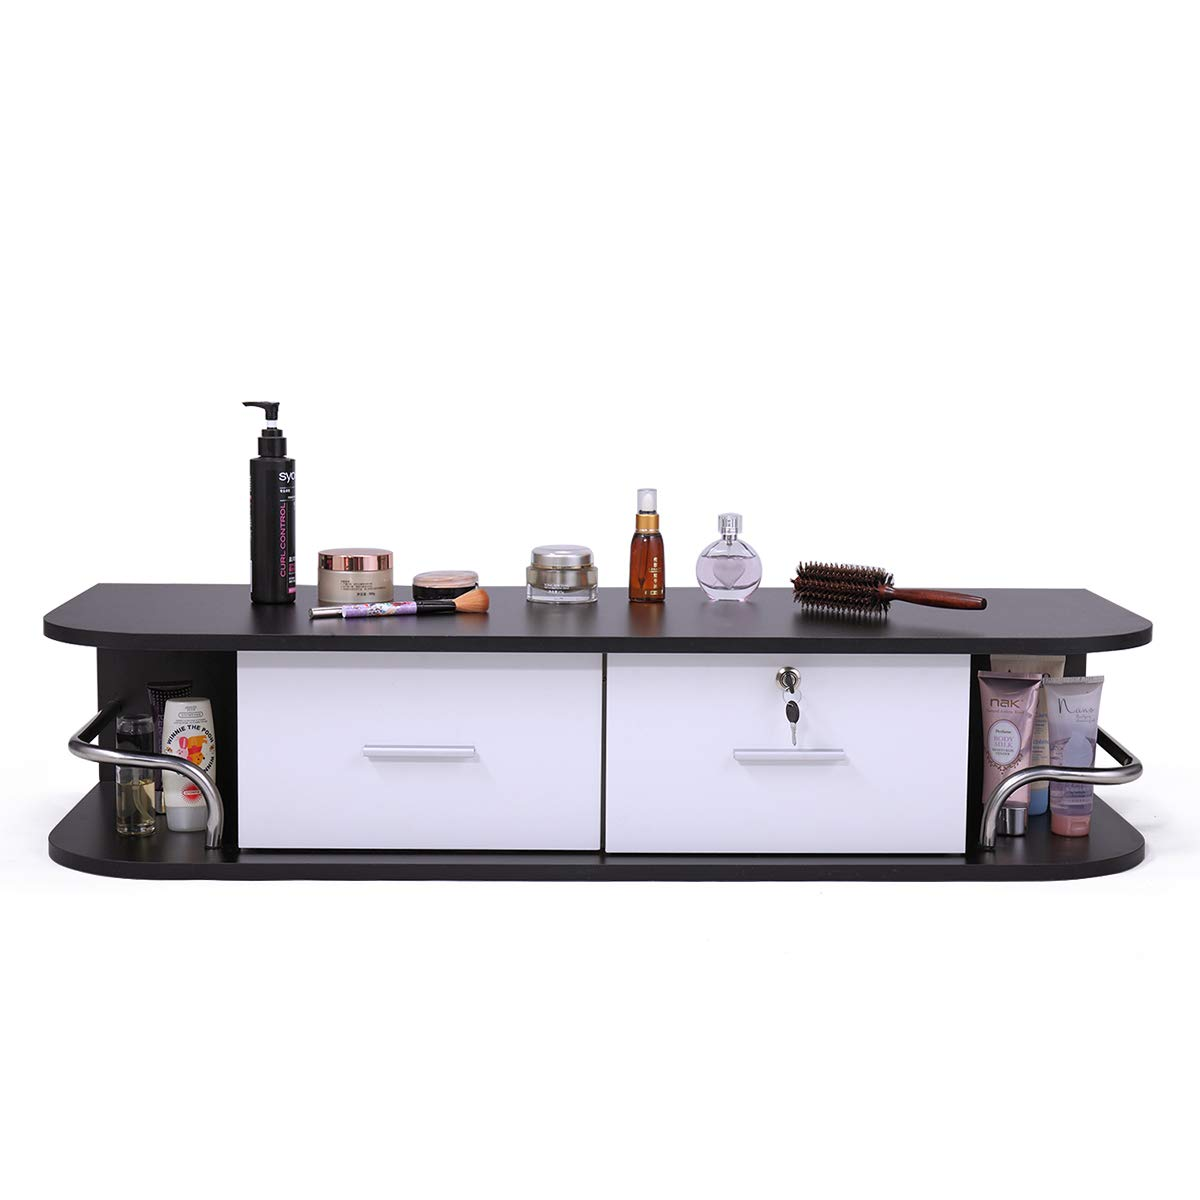 JAXPETY Locking Wall Mount Styling StationwithStainless Steel Top, Black Metal Tabletop Appliance Holder & Two Drawers (White)